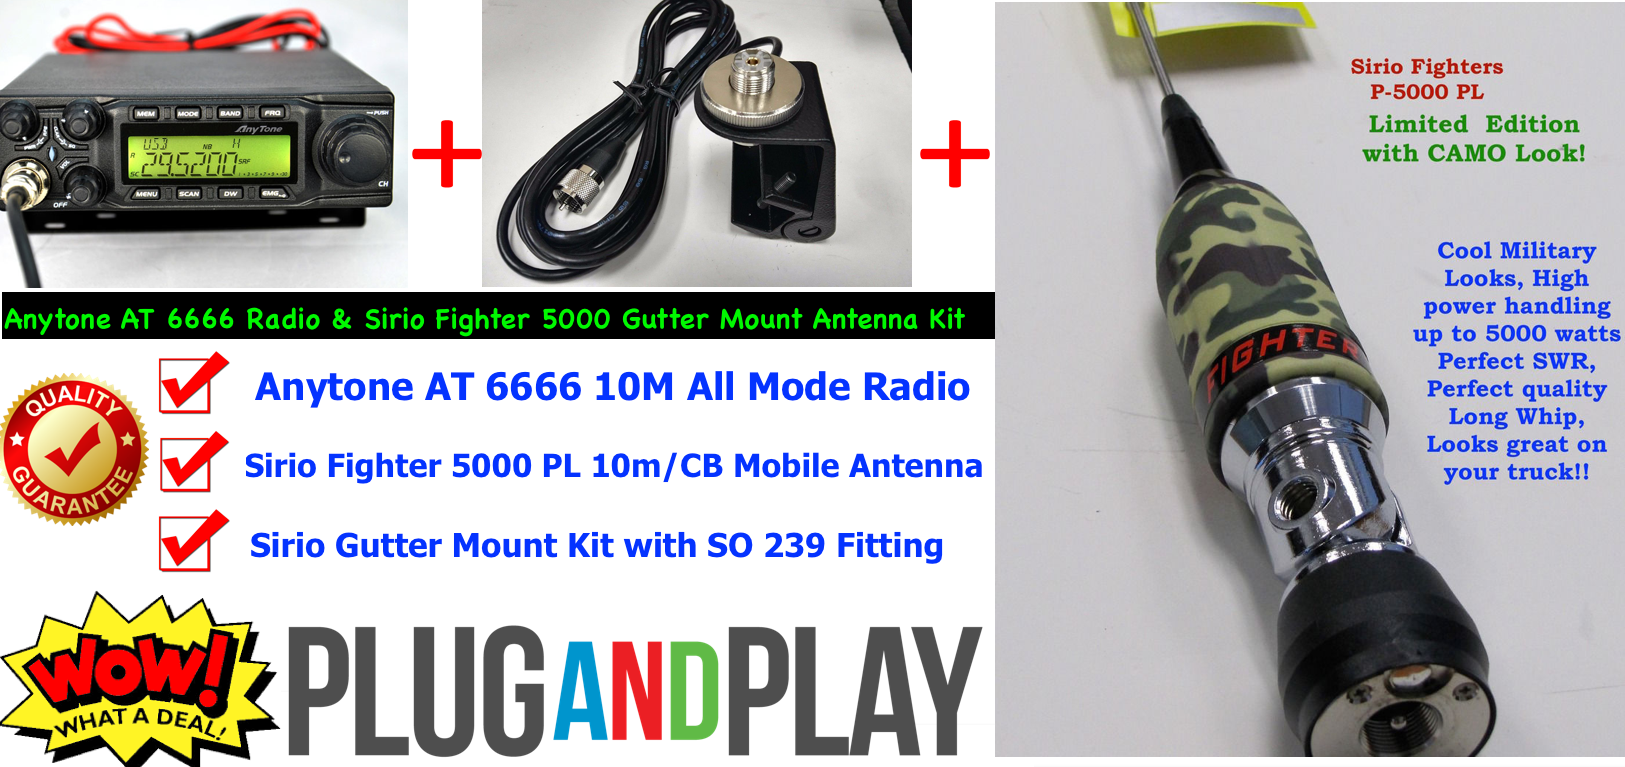 Anytone AT 6666 All Mode Radio & Sirio Fighter 5000 Gutter Mount